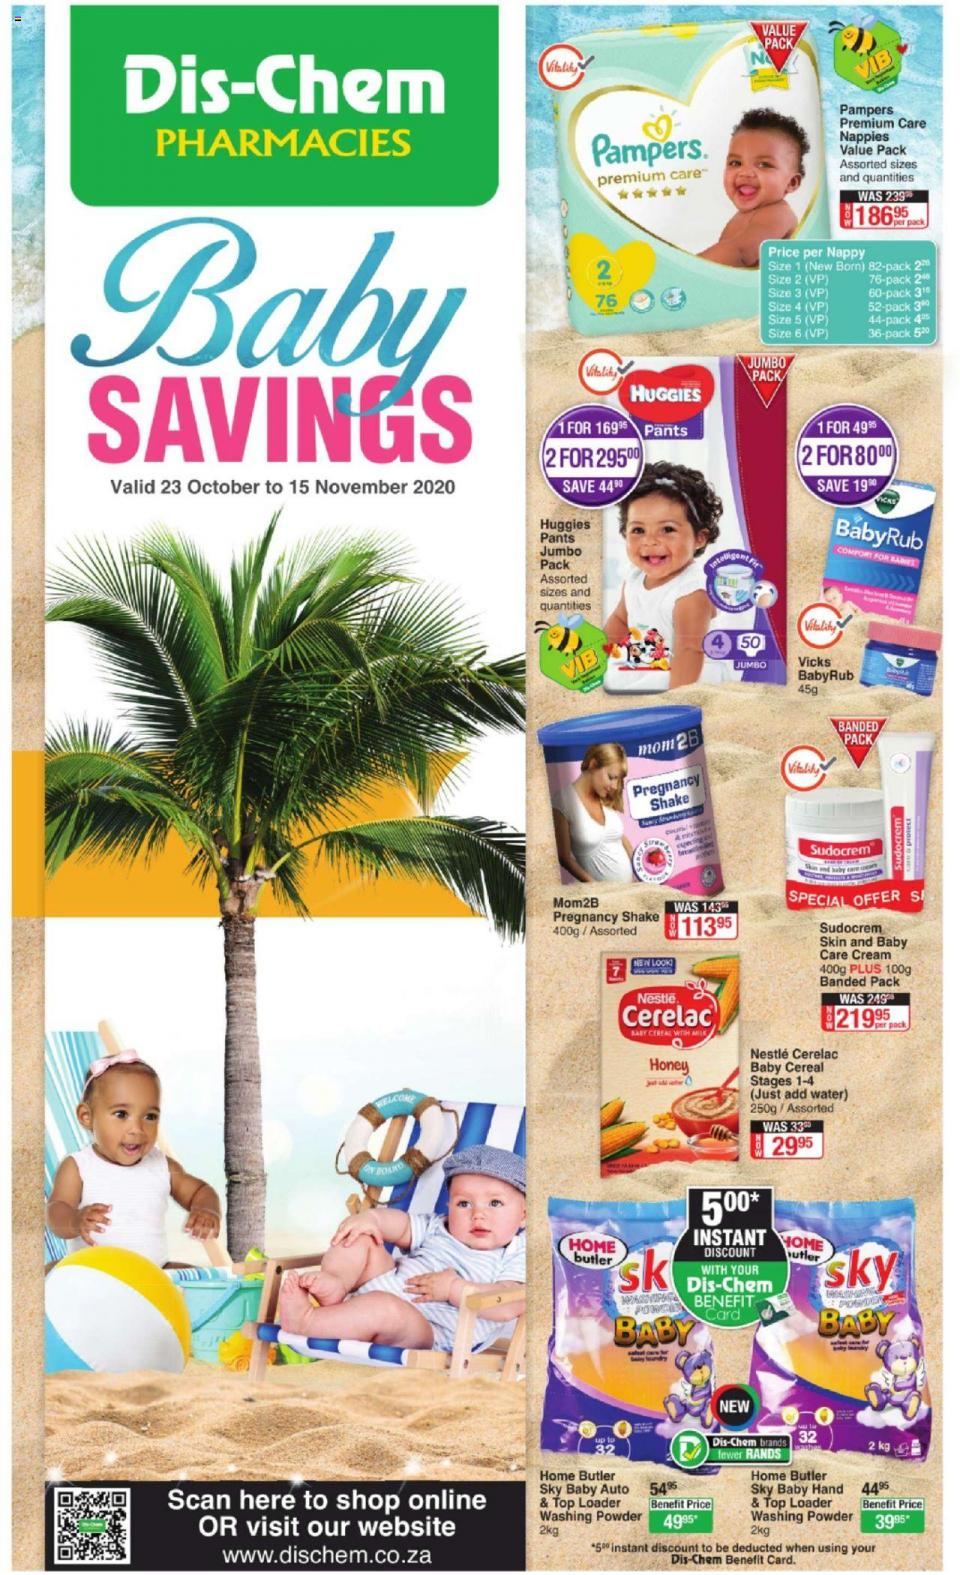 dischem specials baby savings 23 october 2020